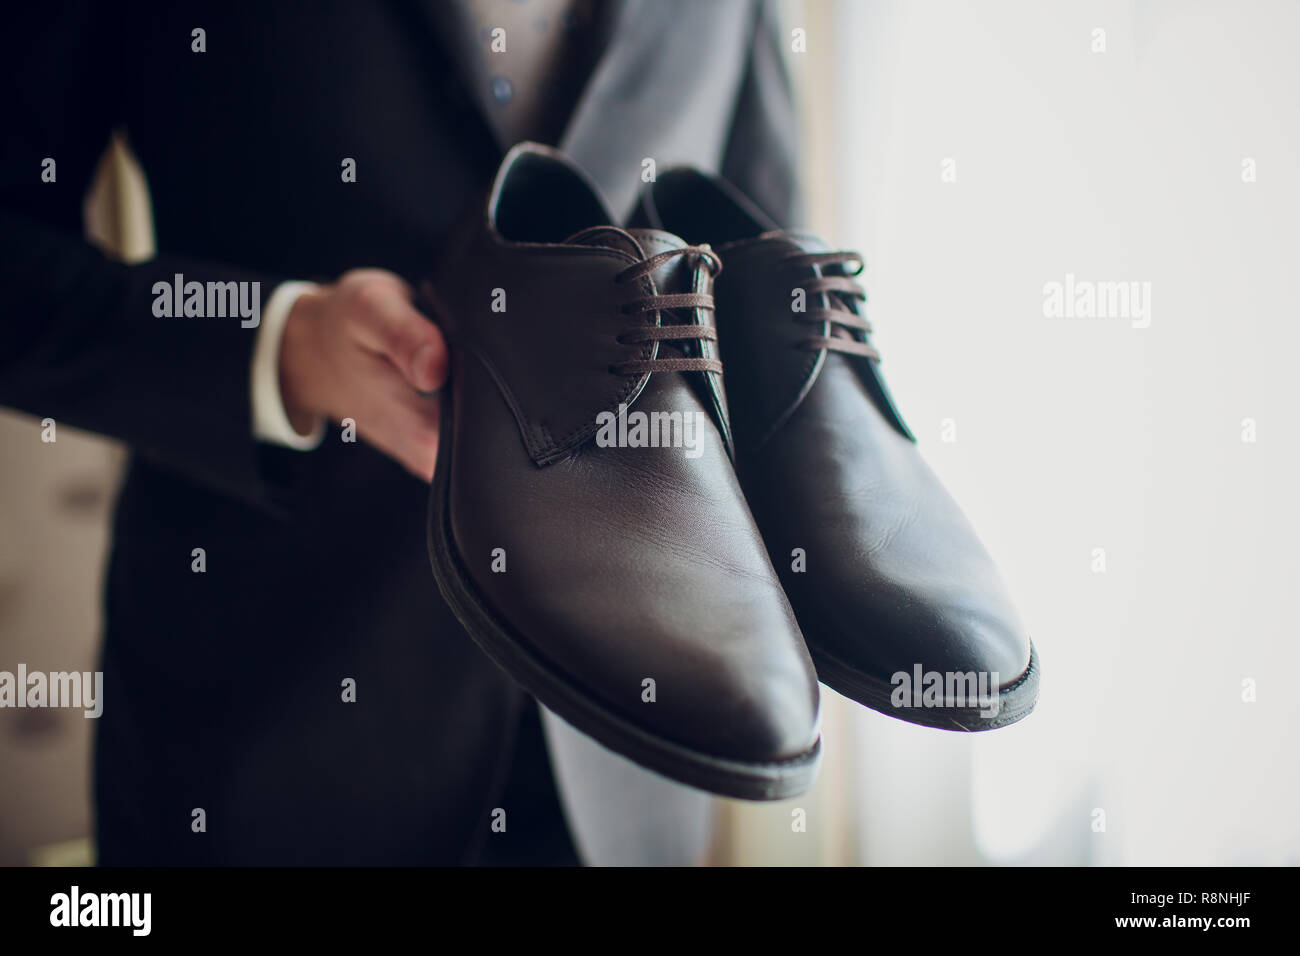 Groom's morning. Wedding accessories. Shoes. The groom ties hoelaces on his shoes - Stock Image